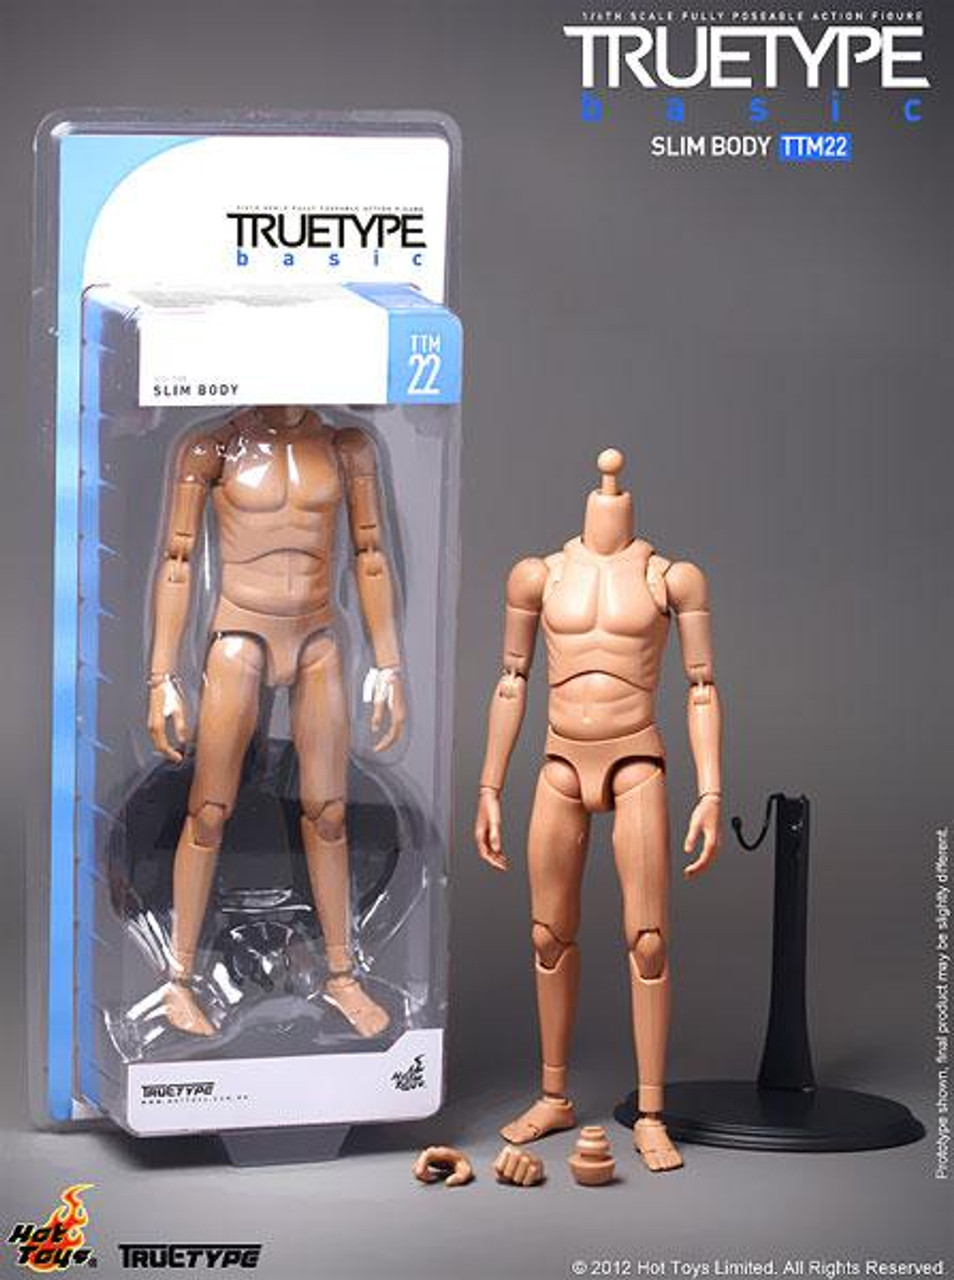 True Type Basics Slim Body 1/6 Collectible Figure [TTM22]